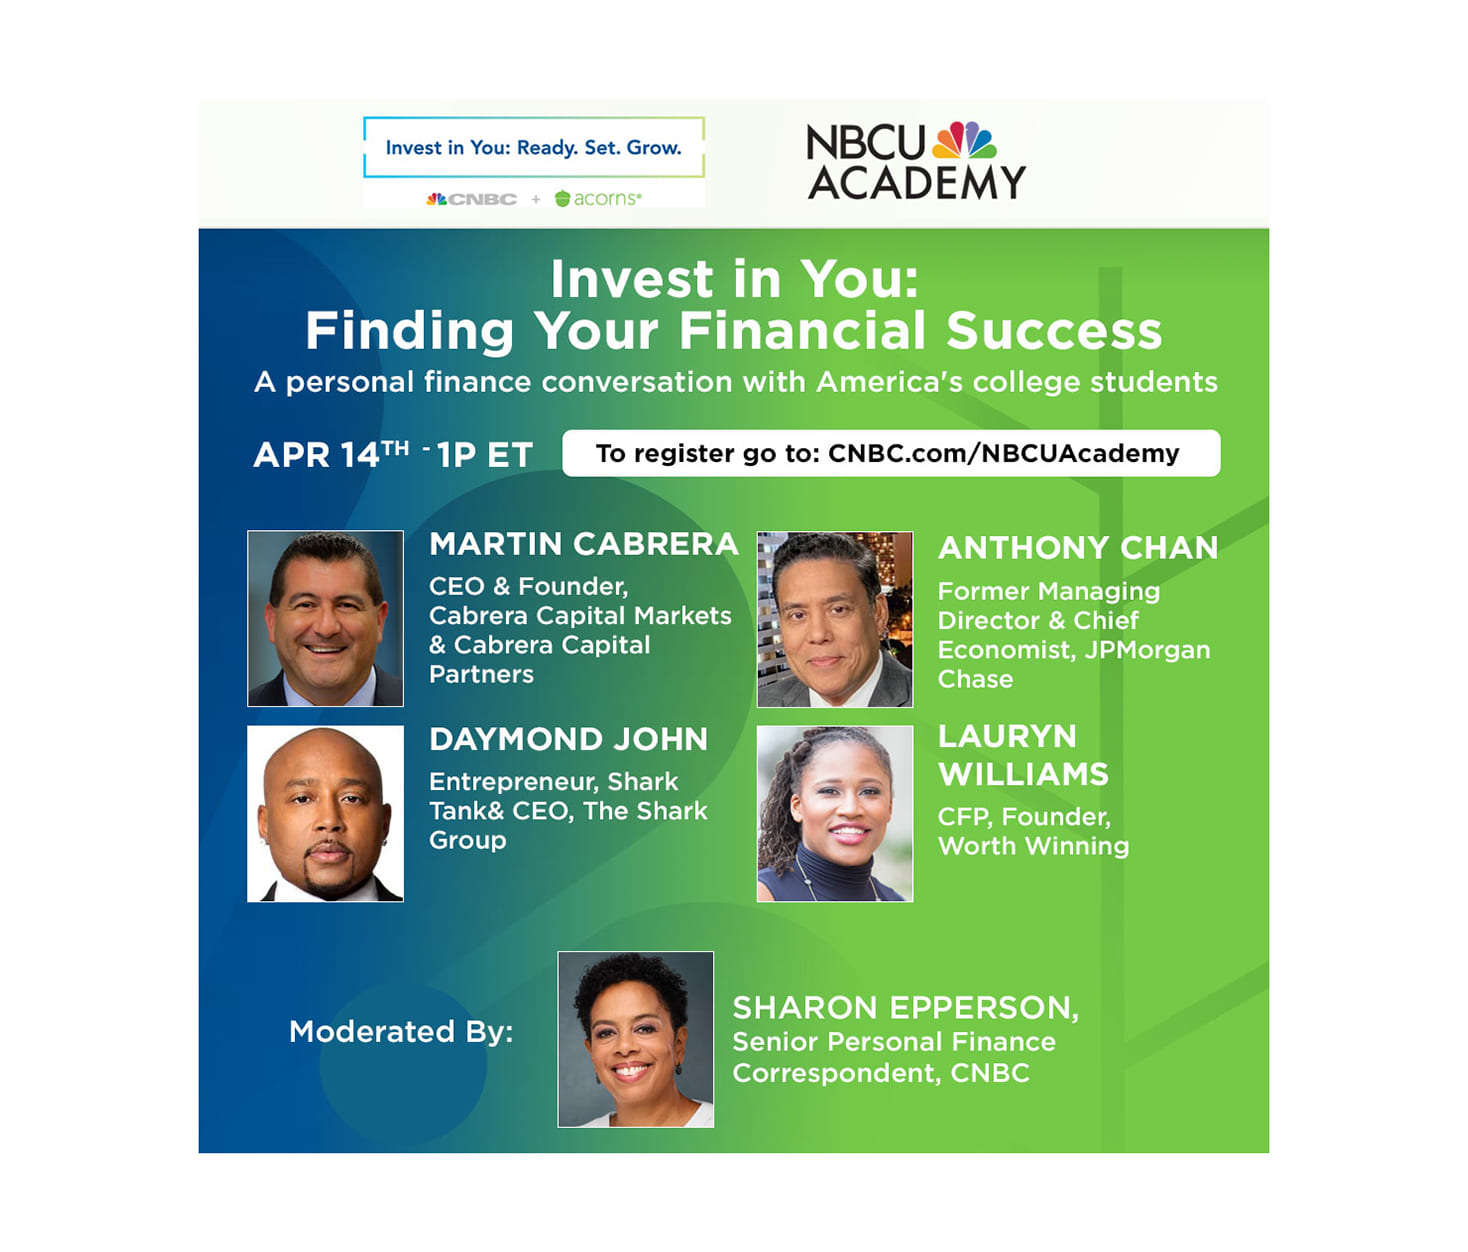 Invest in You: Finding Your Financial Success